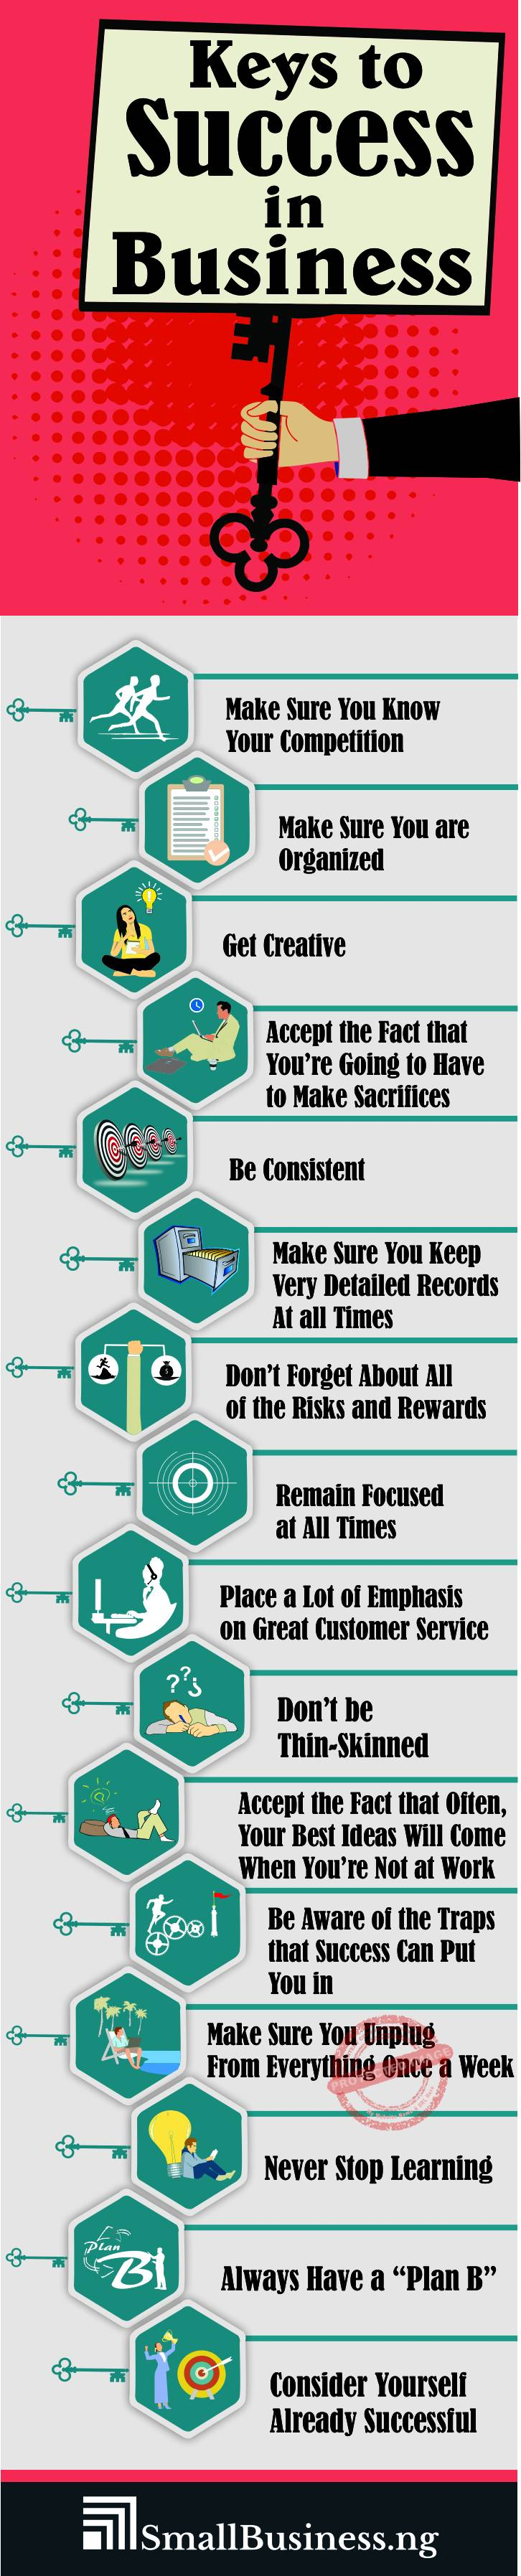 Keys to Success in Business Infographic